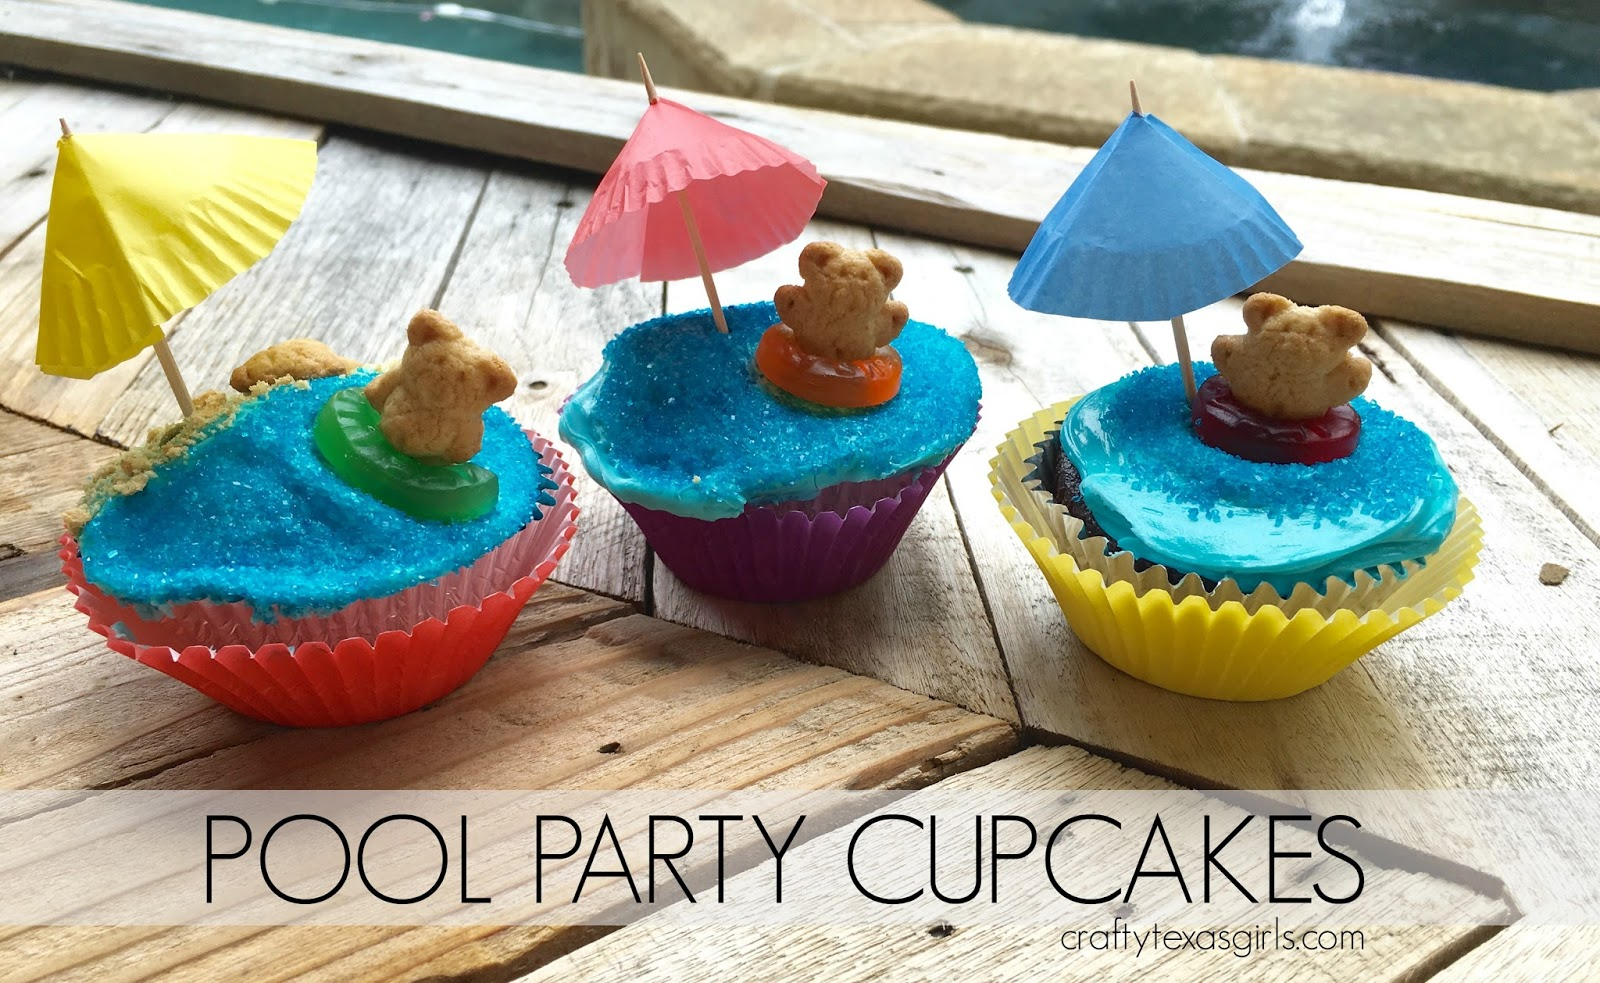 Crafty texas girls pool party cupcakes i used a box chocolate cake mix for the cupcakes and added an extra egg plus a teaspoon of vanilla it makes the mix taste more homemade sciox Choice Image